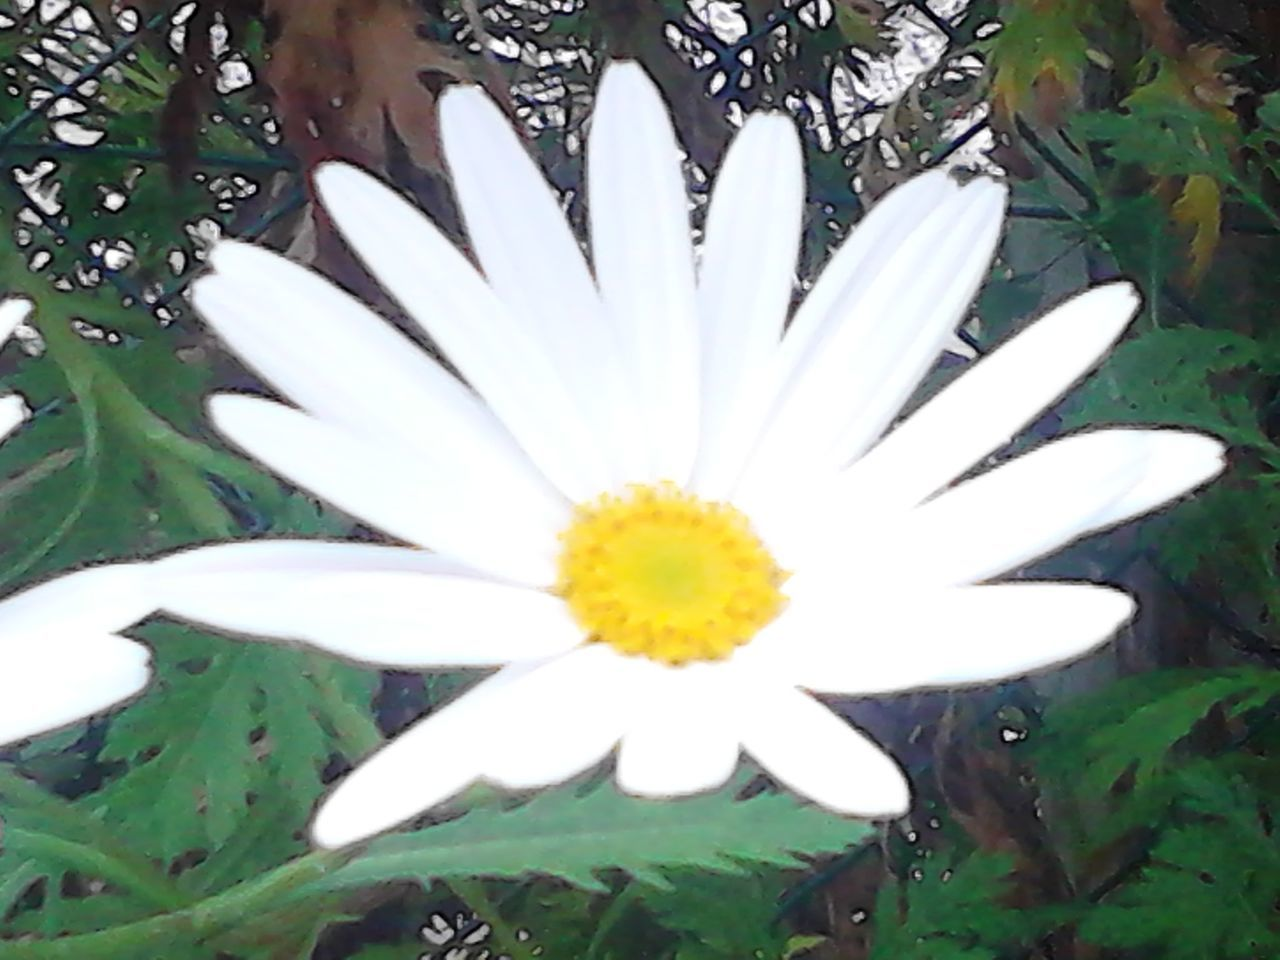 flower, white color, petal, nature, beauty in nature, growth, plant, freshness, flower head, leaf, fragility, blooming, no people, outdoors, day, close-up, osteospermum